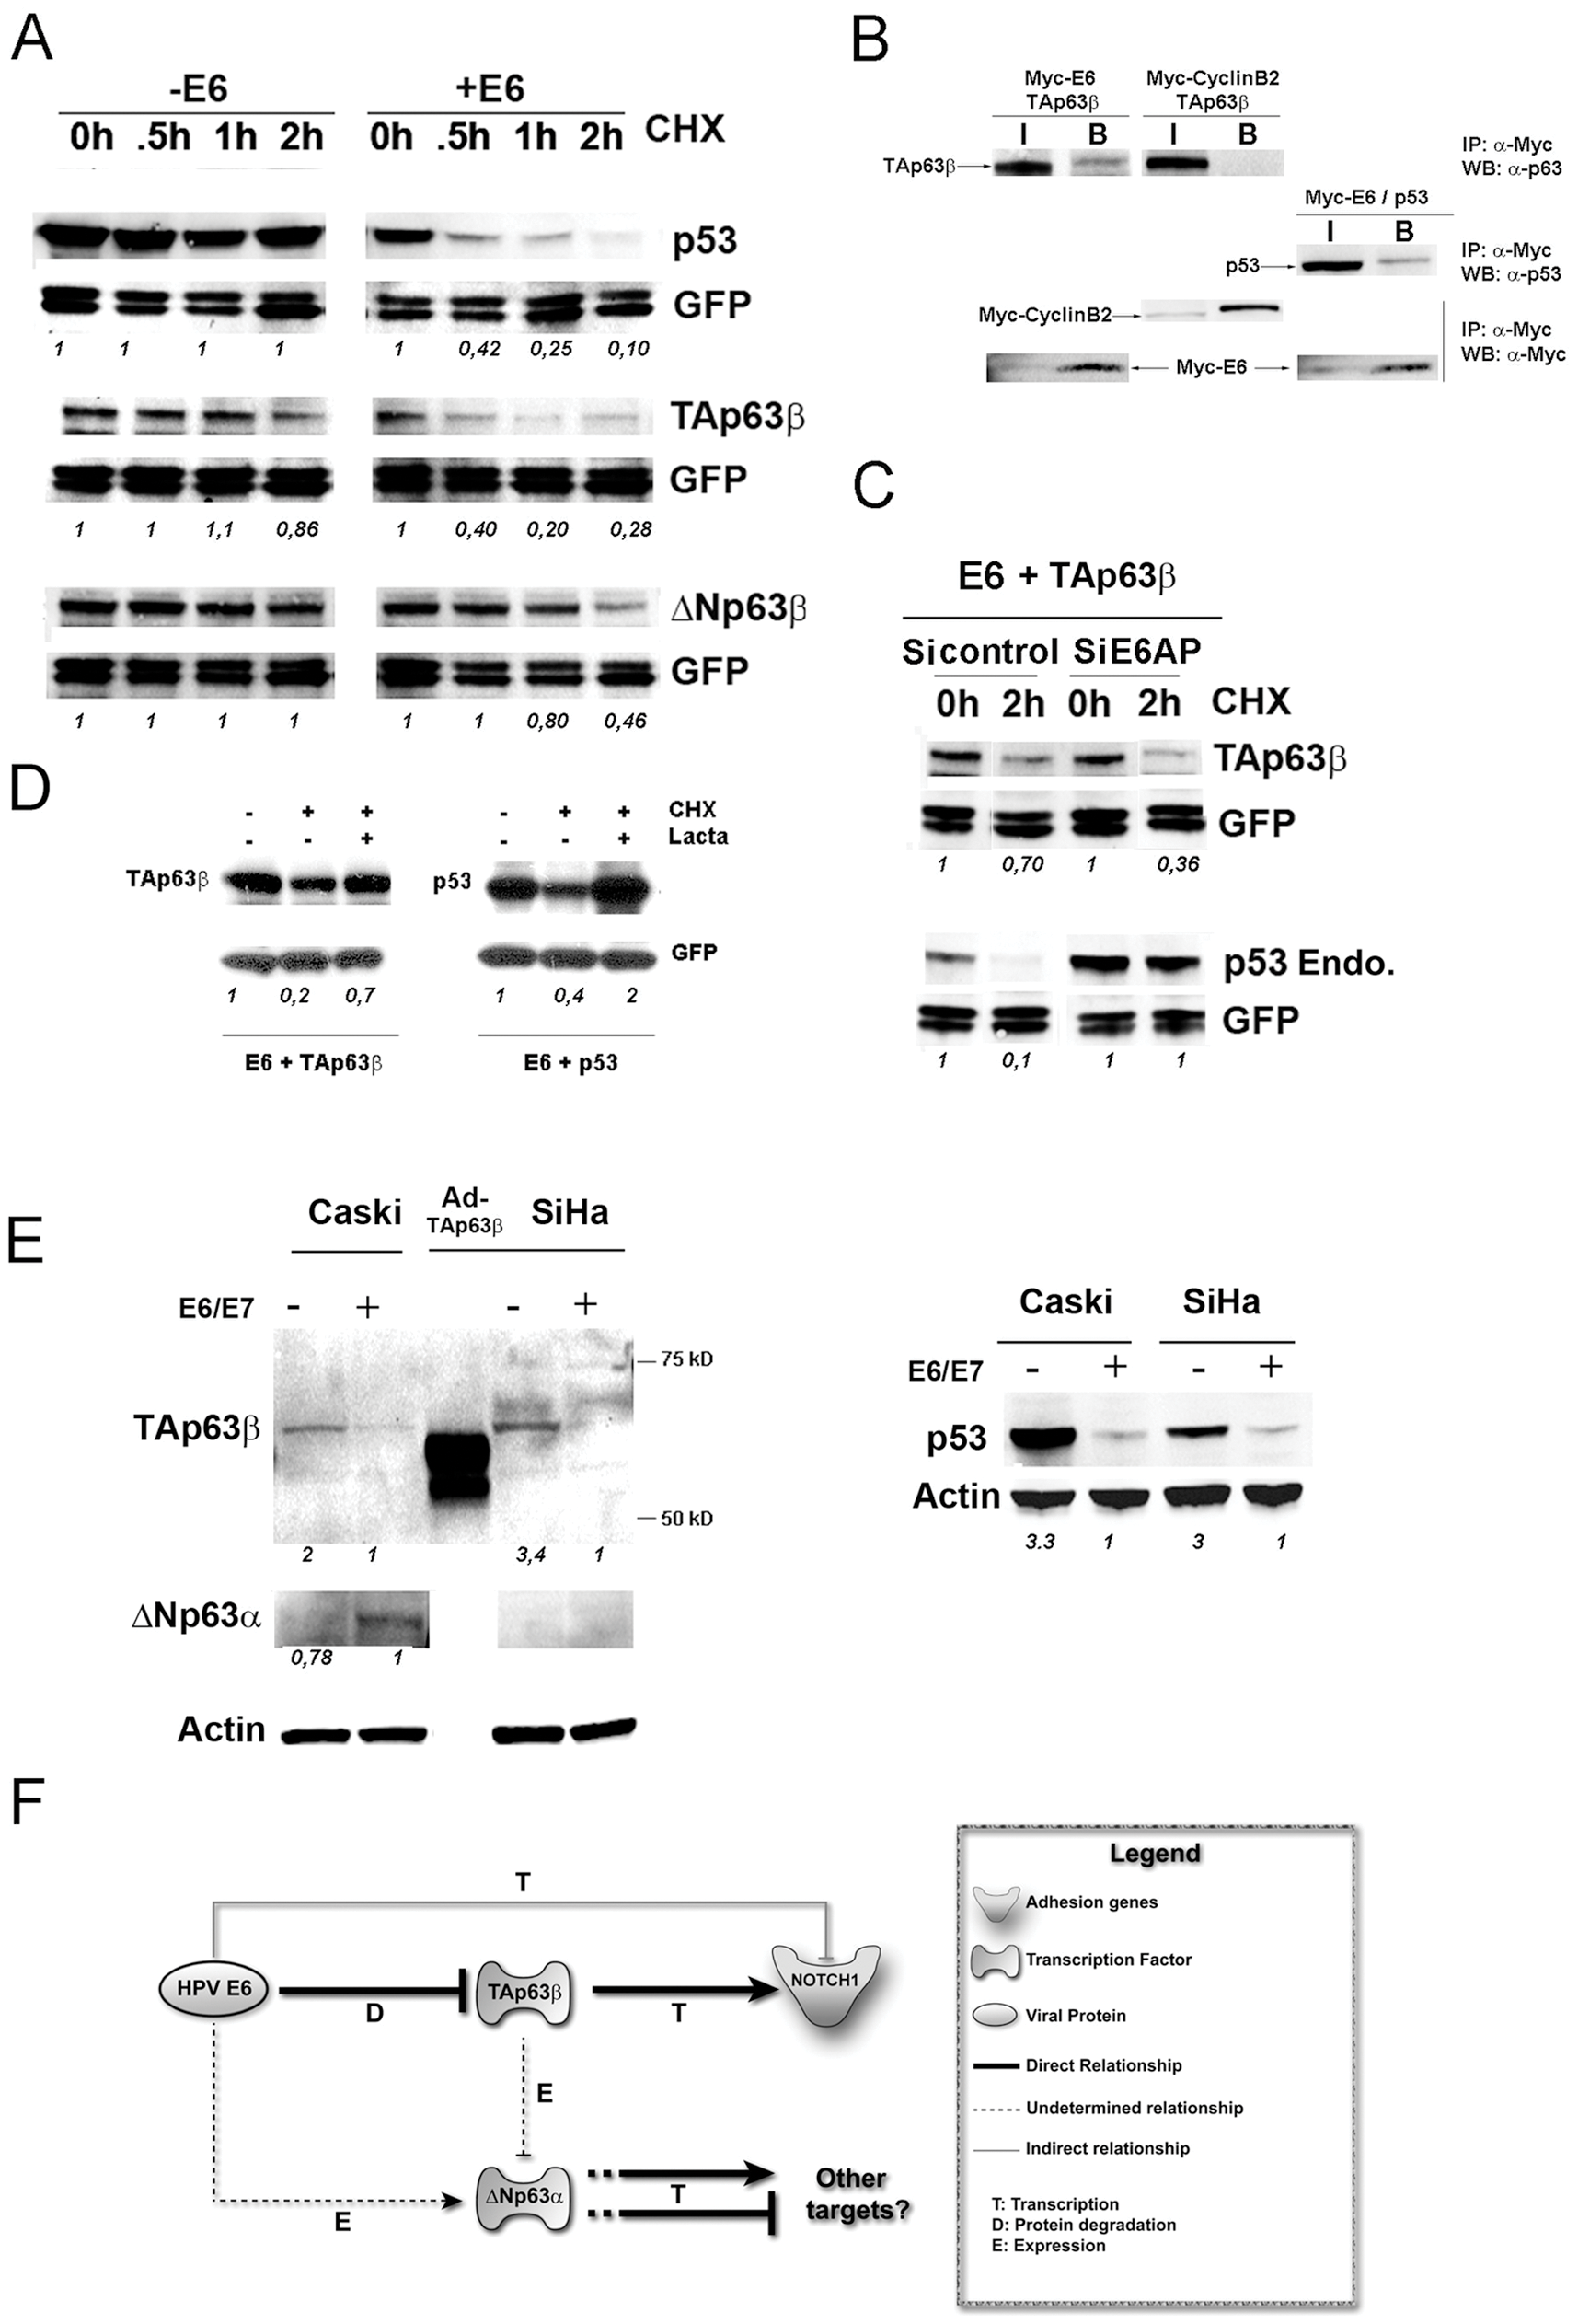 The HPV18 E6 oncogene interacts with and induces degradation of the TAp63β isoform in an E6AP independent manner.